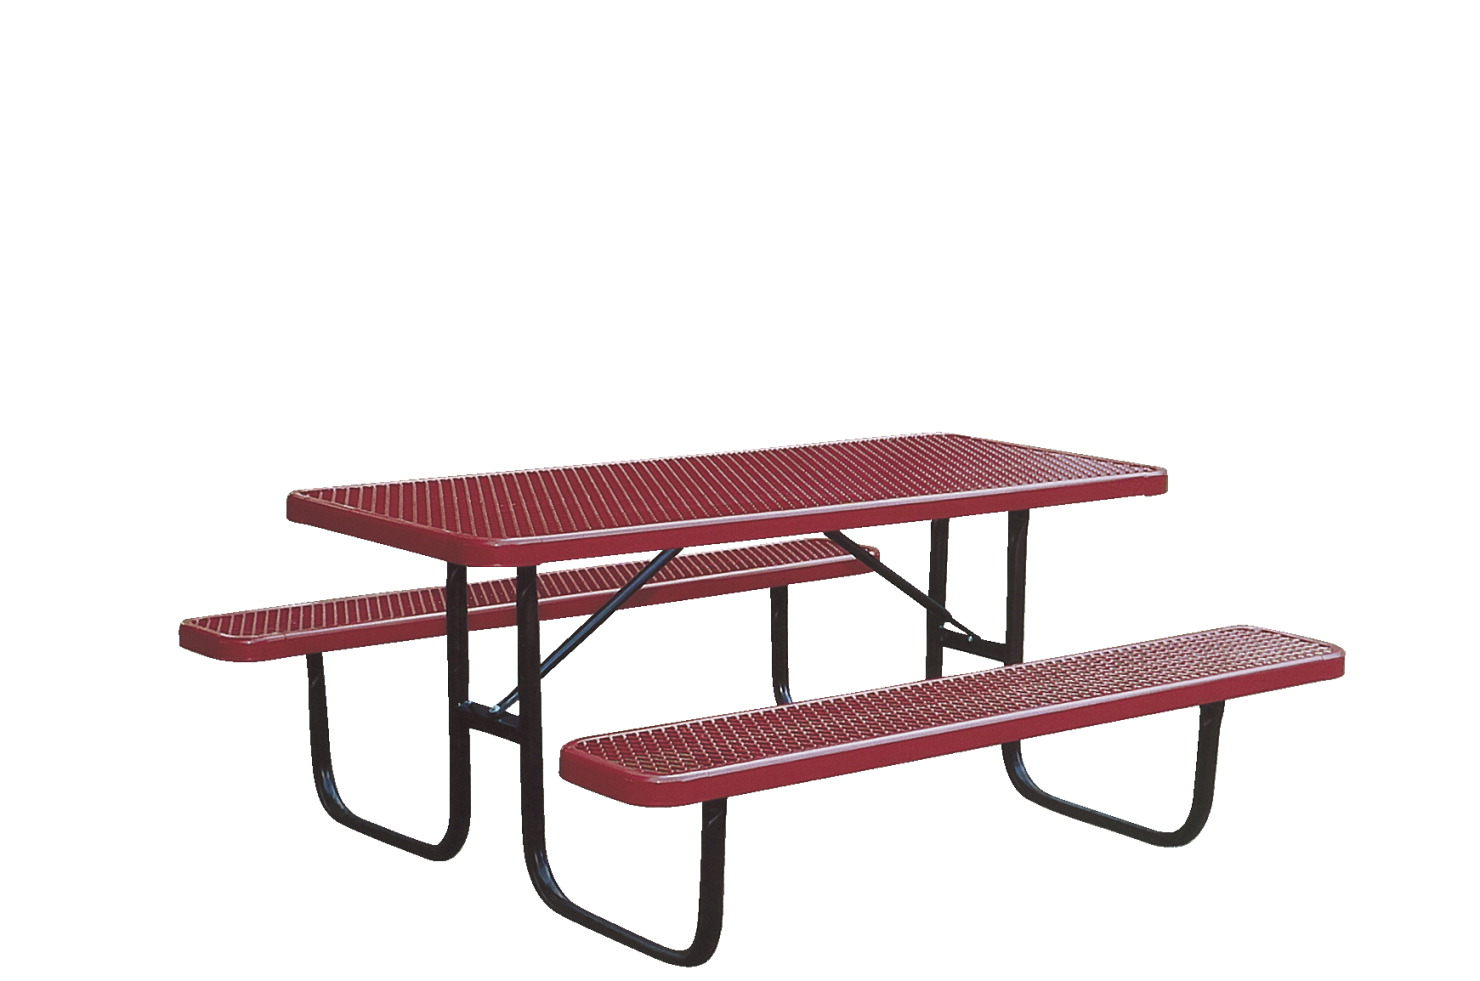 UltraSite UltraCoat Thermoplastic Picnic Table with Benches, 96 x 64-3/4 x 30-5/16 Inches, Various Options